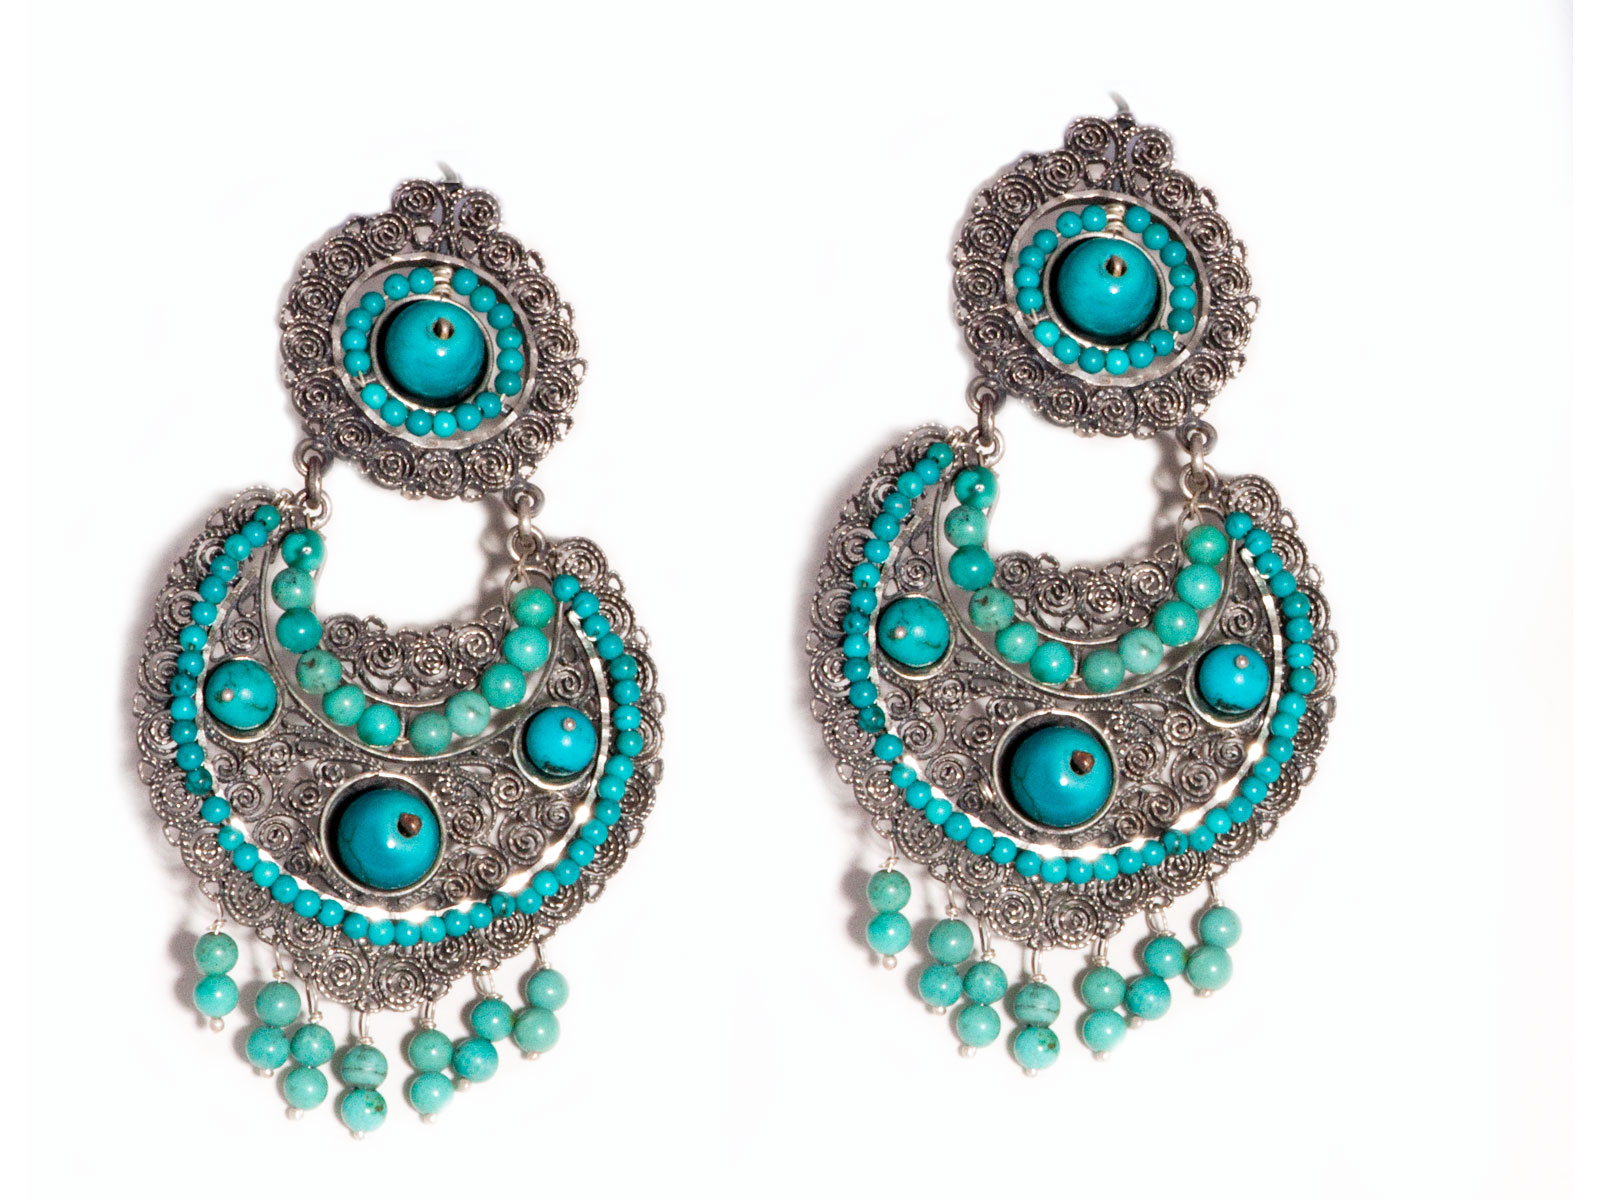 1adb9d8b5 Turquoise Filigree Dangle Earrings with Turquoise Beads from Federico